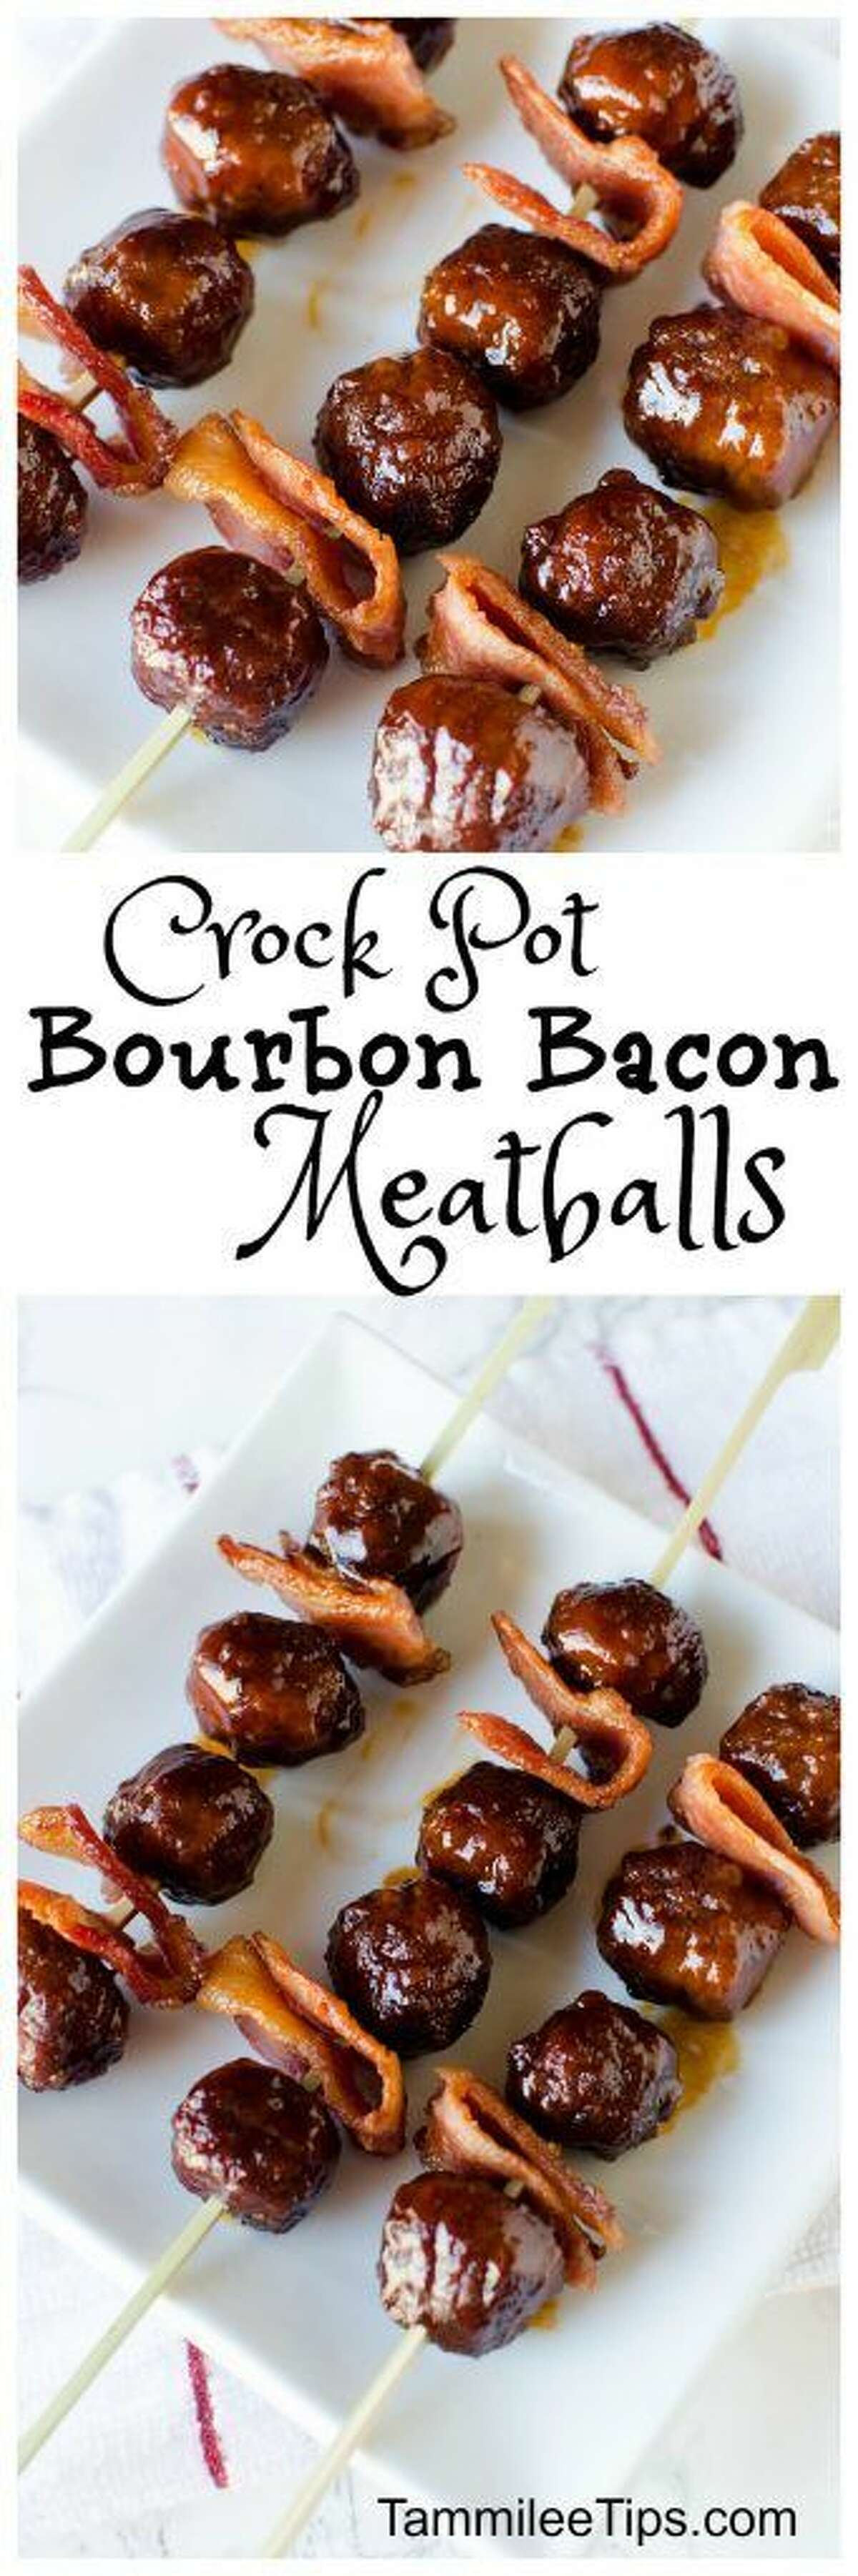 Bourbon bacon meatballs: Who doesn't love bacon and a little booze? Photo/recipe: Pinterest